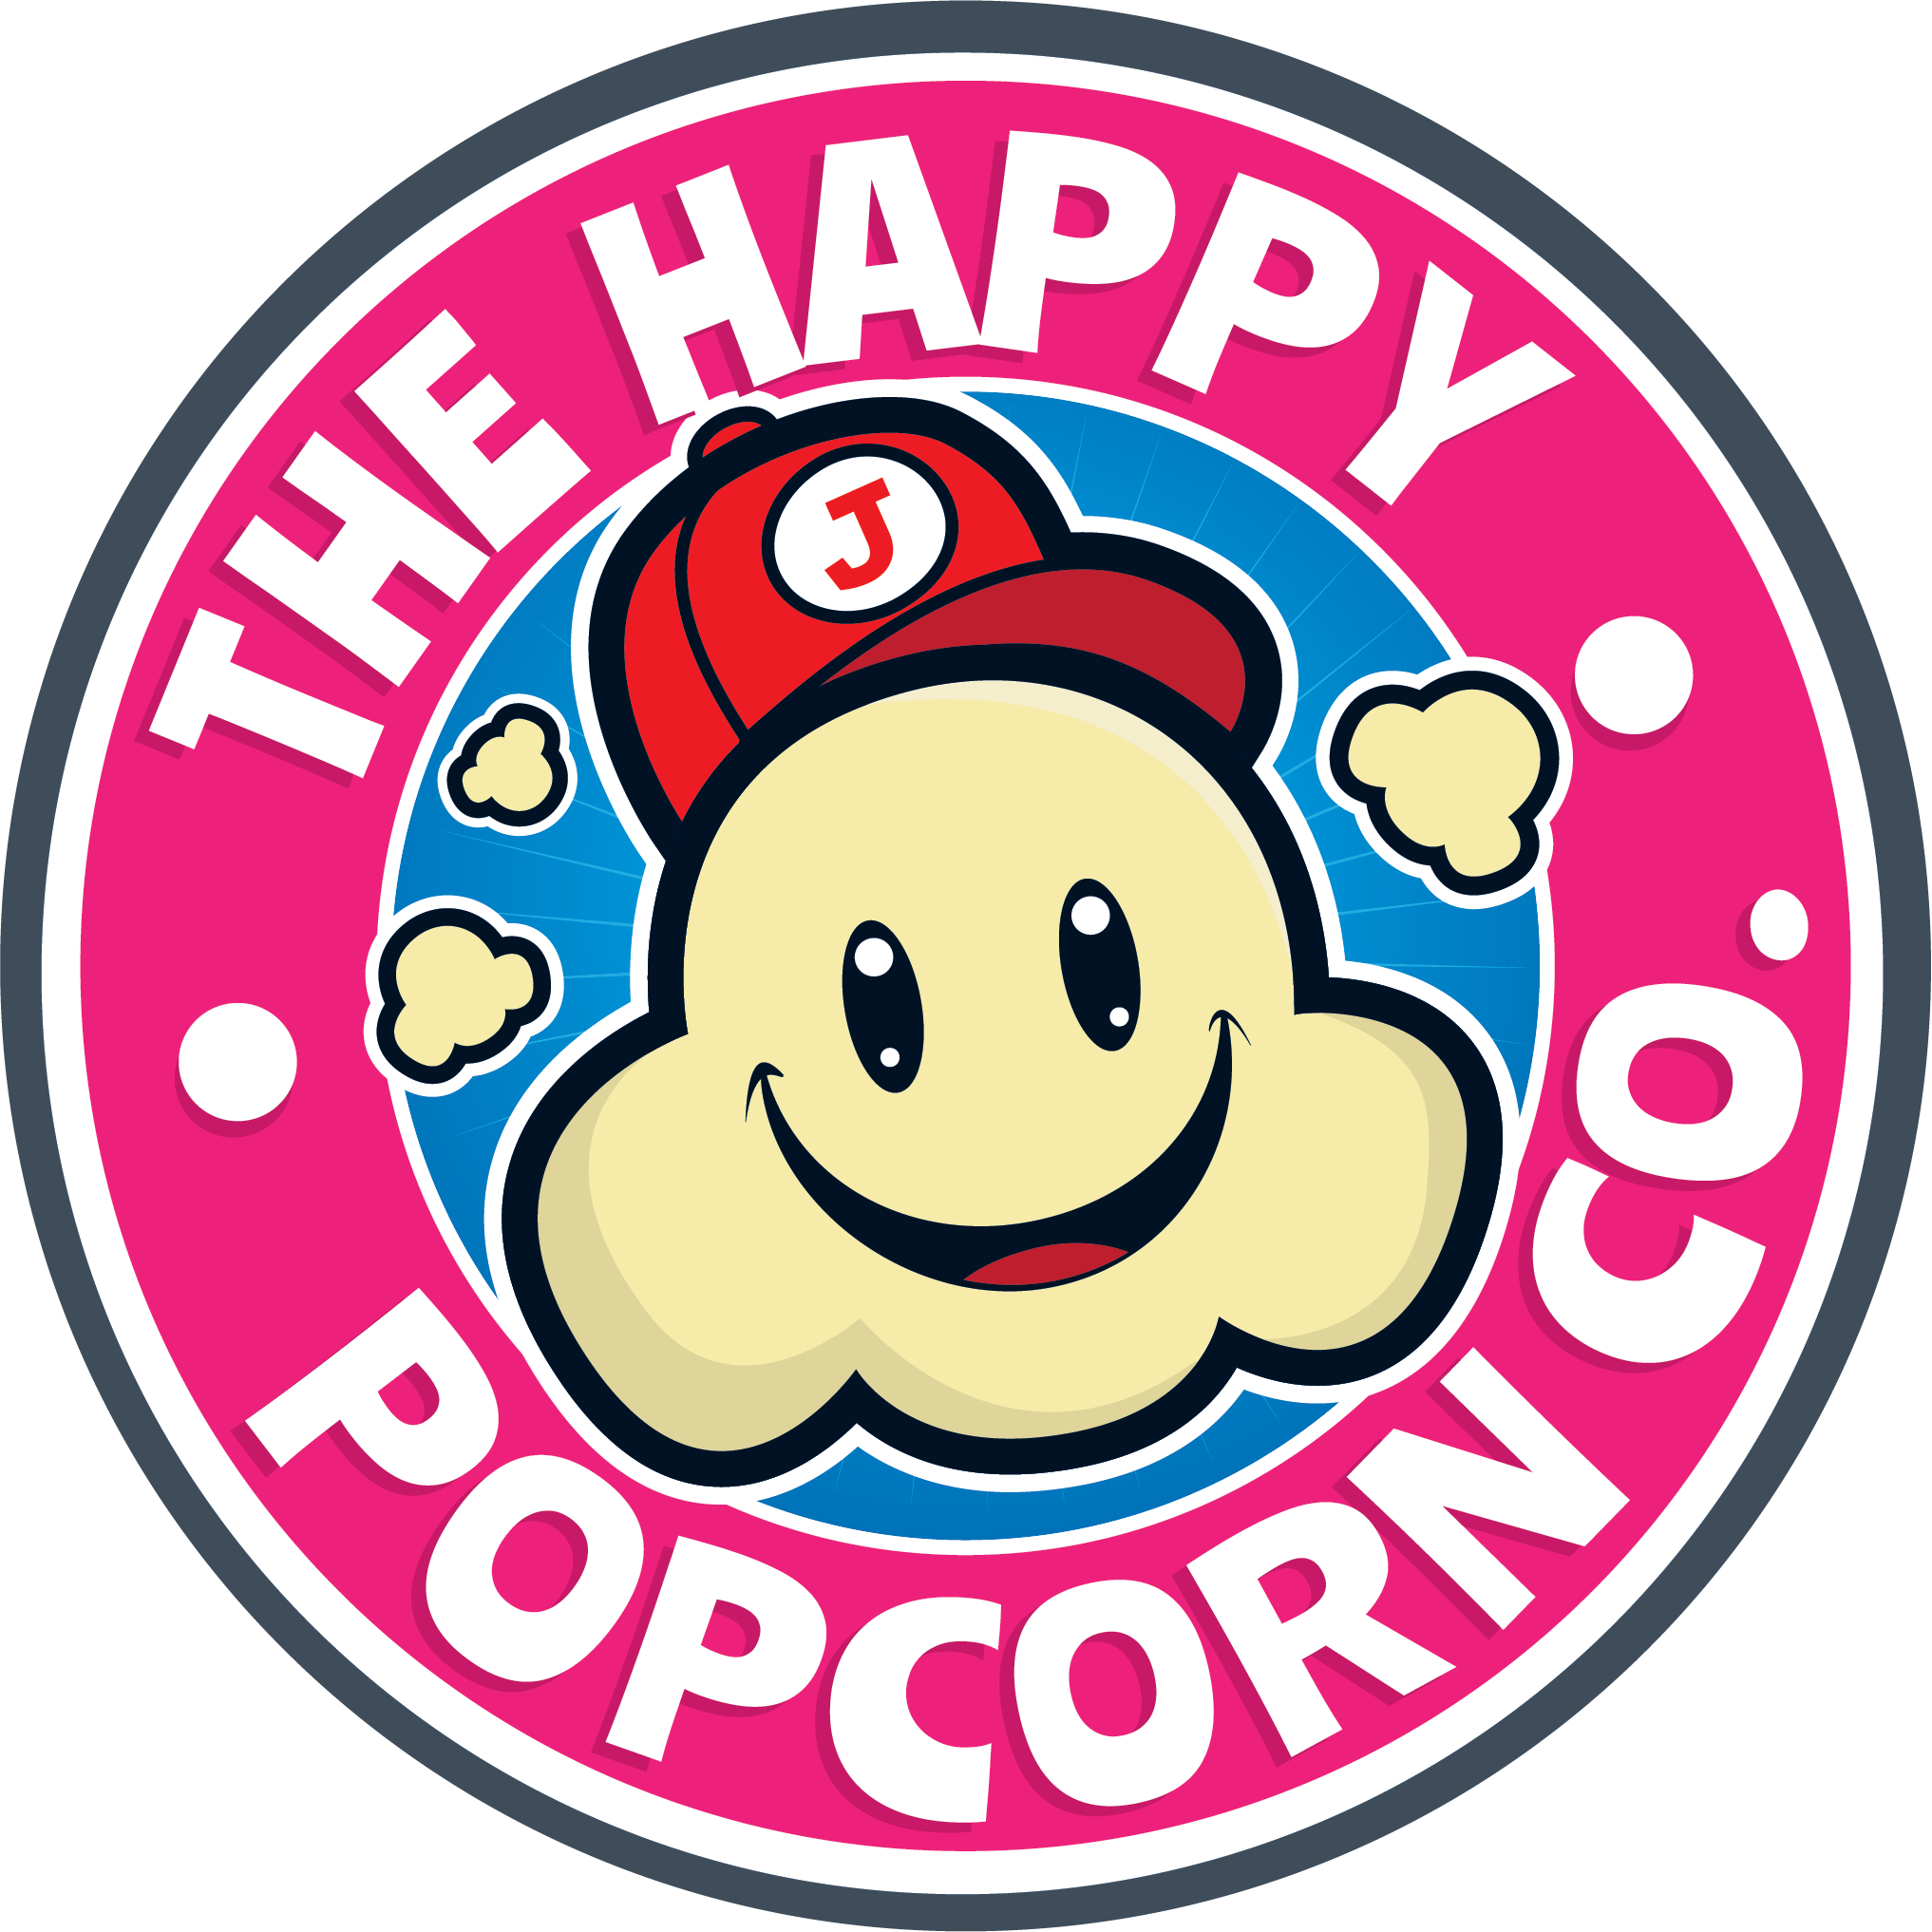 The Happy Popcorn Co Logo - Popcorn mascot with a red hat inside a pink circle